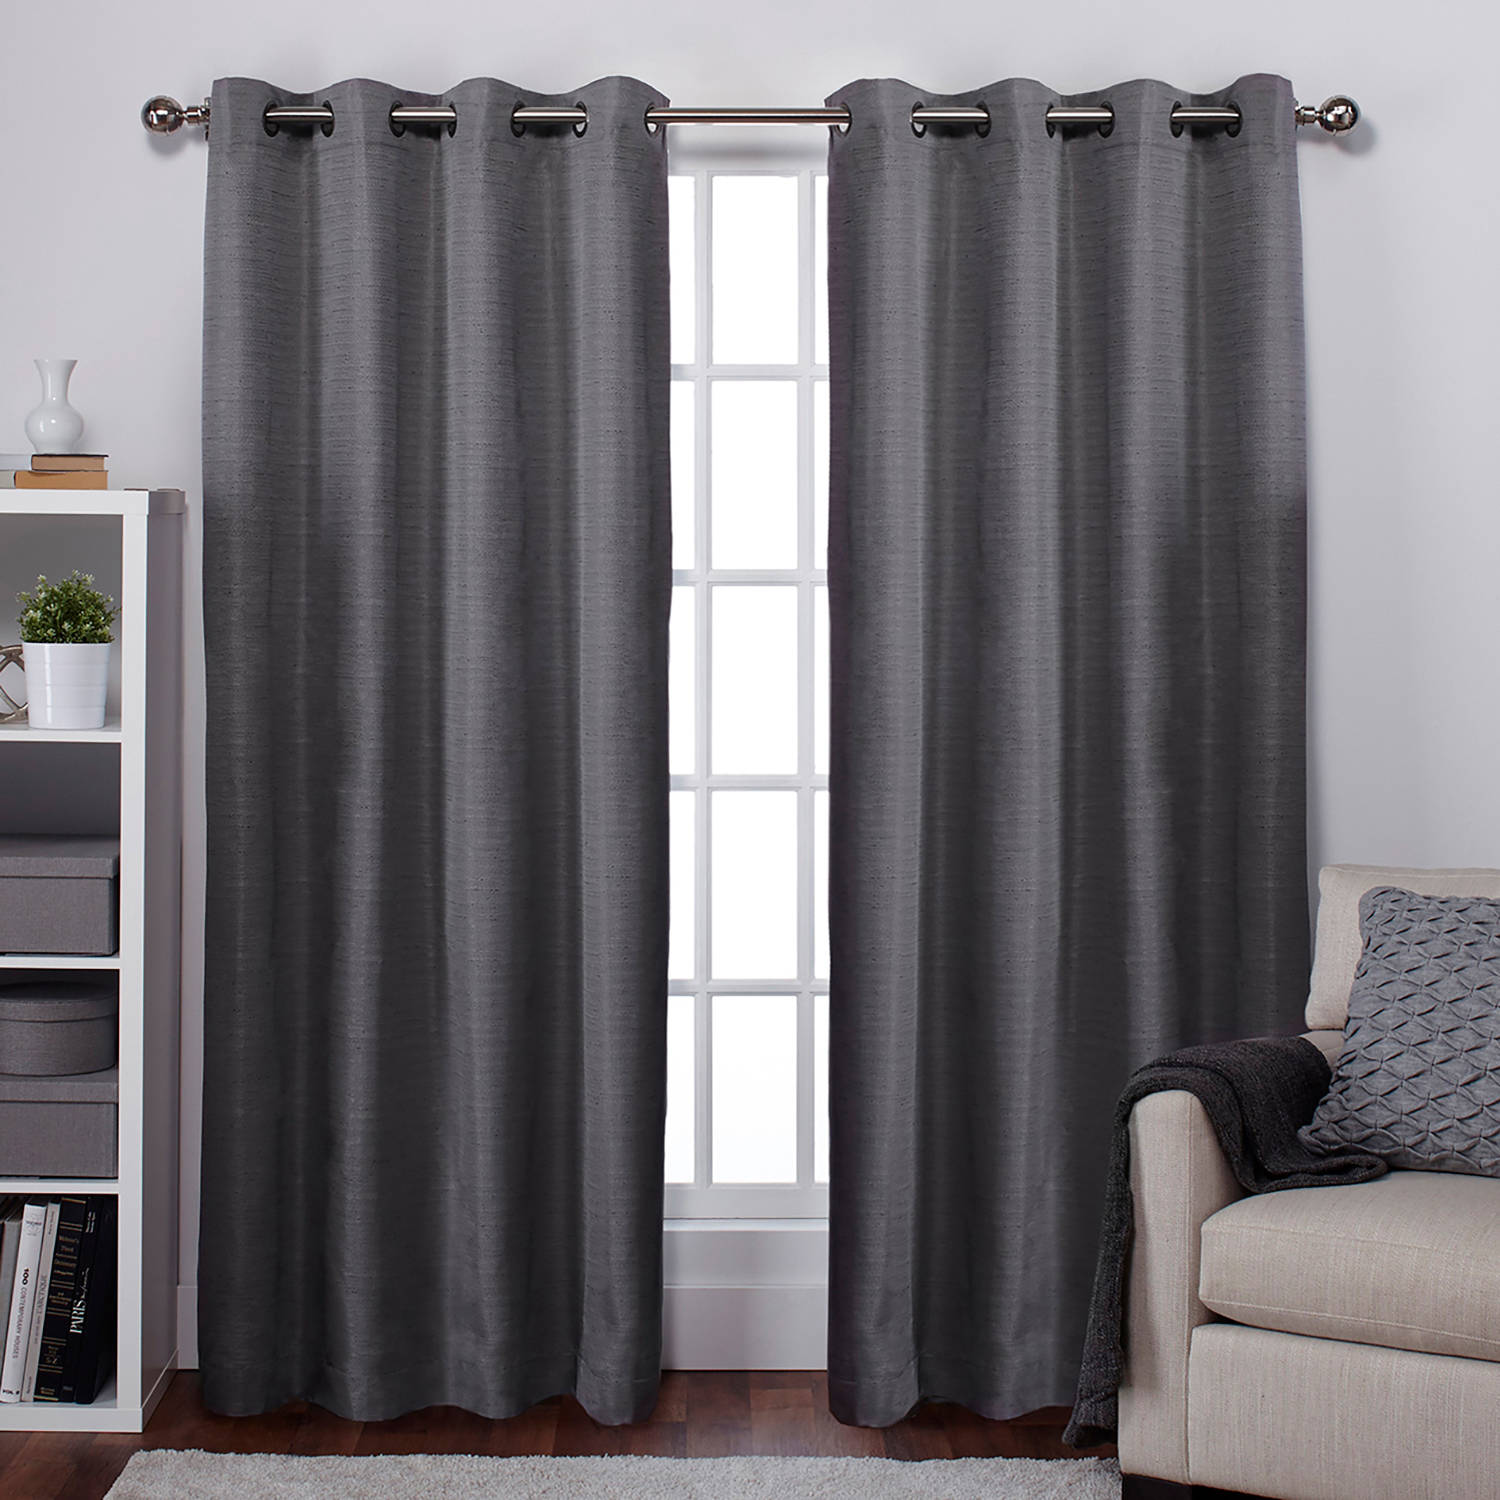 Exclusive Home Raw Silk Thermal Grommet Top Window Curtain Panels, Black Pearl, 54 x 84... by Exclusive Home